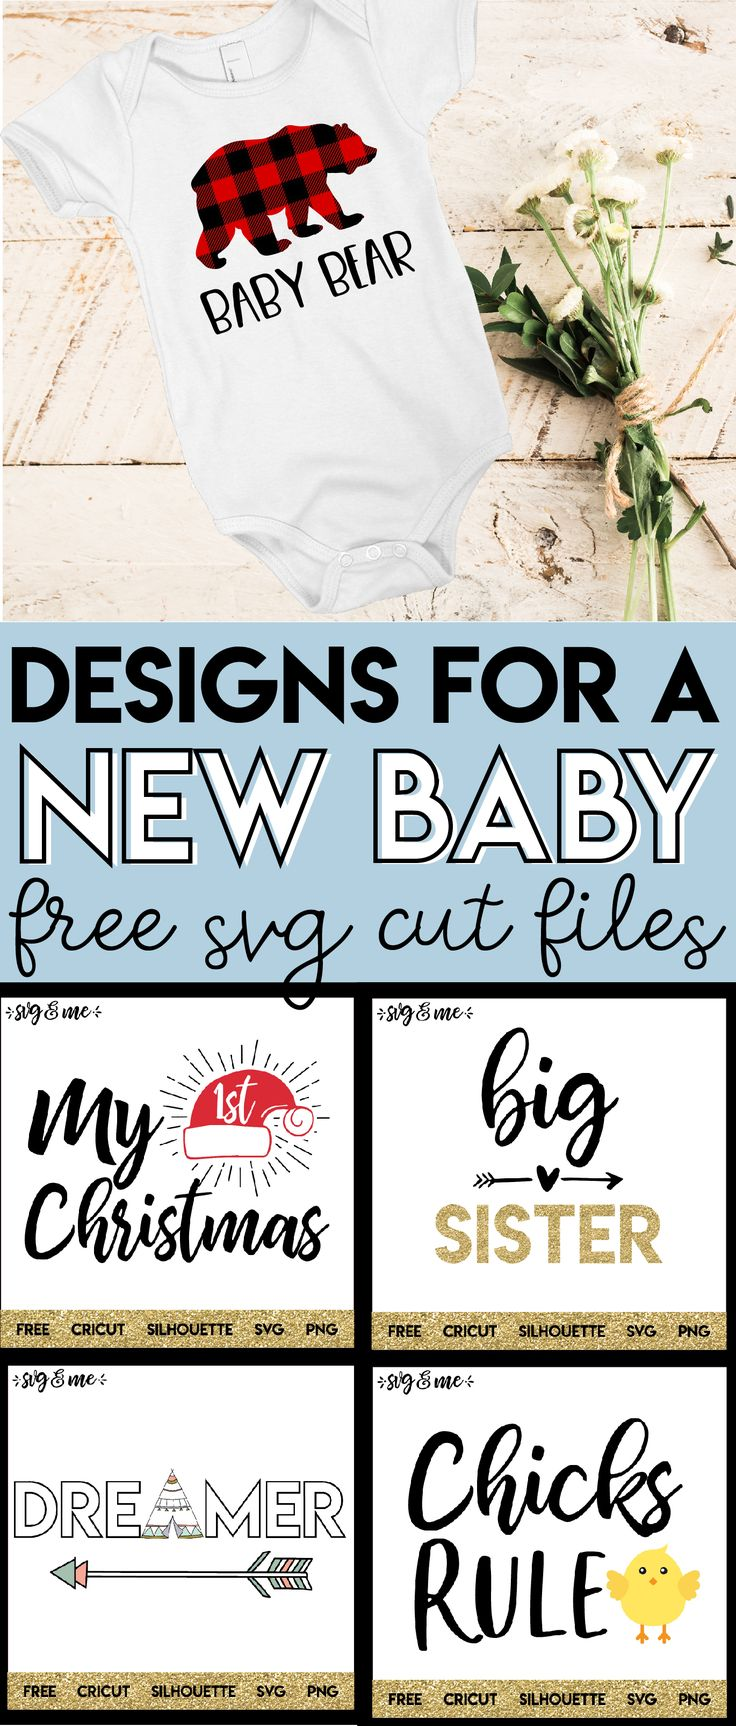 Can't wait to use my Cricut and these free SVG files to create a whole bunch of baby onesies for a baby shower gift! Adorable cut files at this site you need to check out! #cricut #svg #free